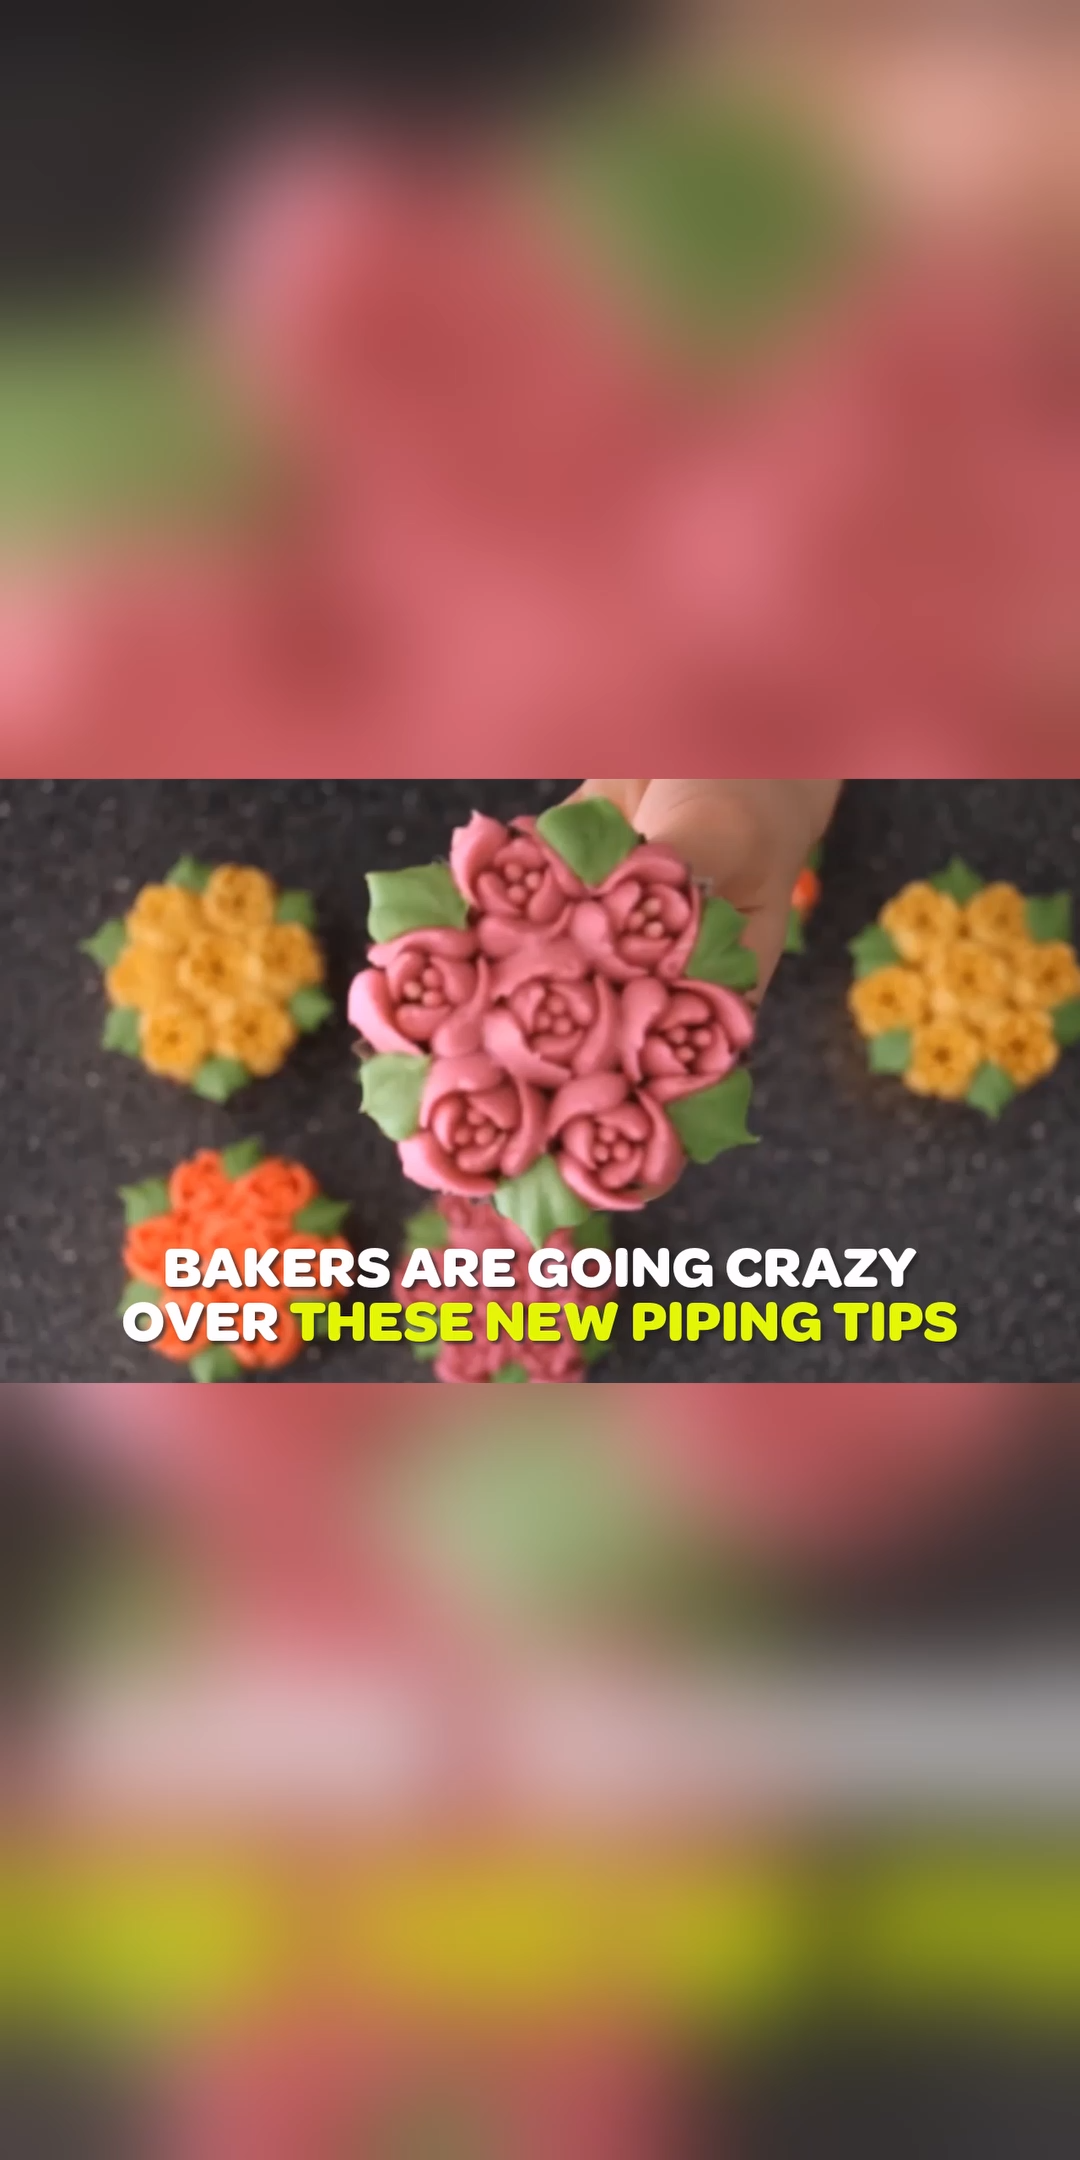 Photo of See why people are going nuts over these CakeLove tips.